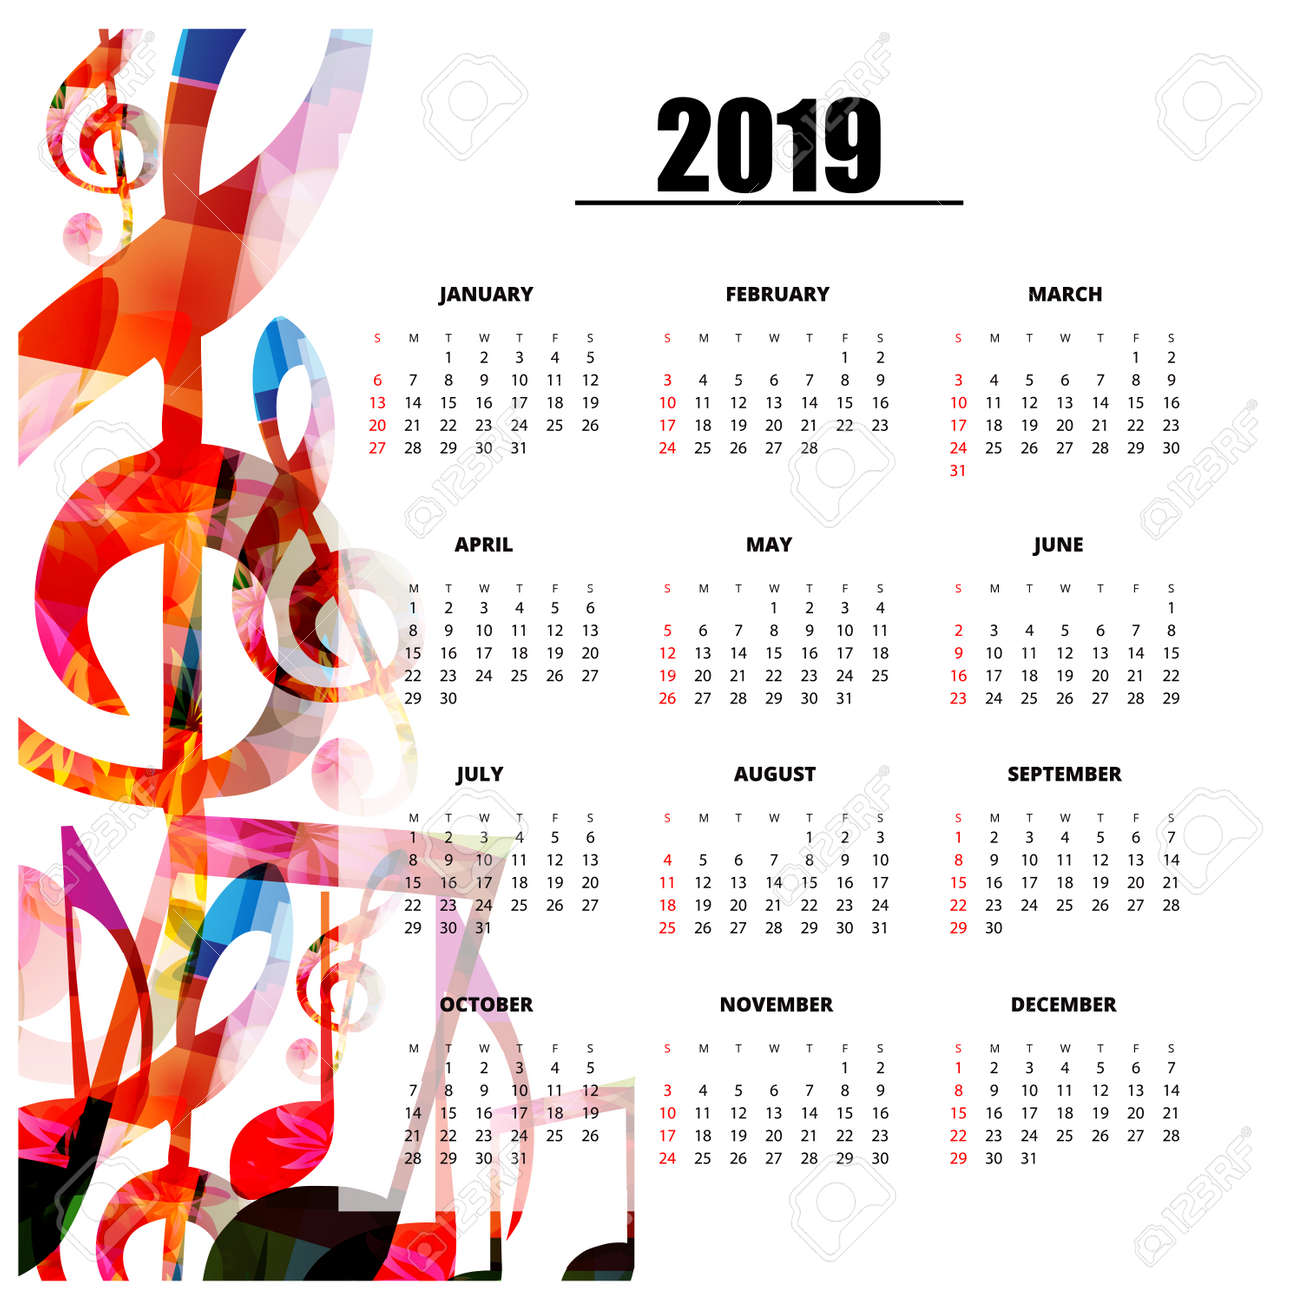 Music Calendar 2019 Calendar Planner 2019 Template With Colorful Music Notes. Music